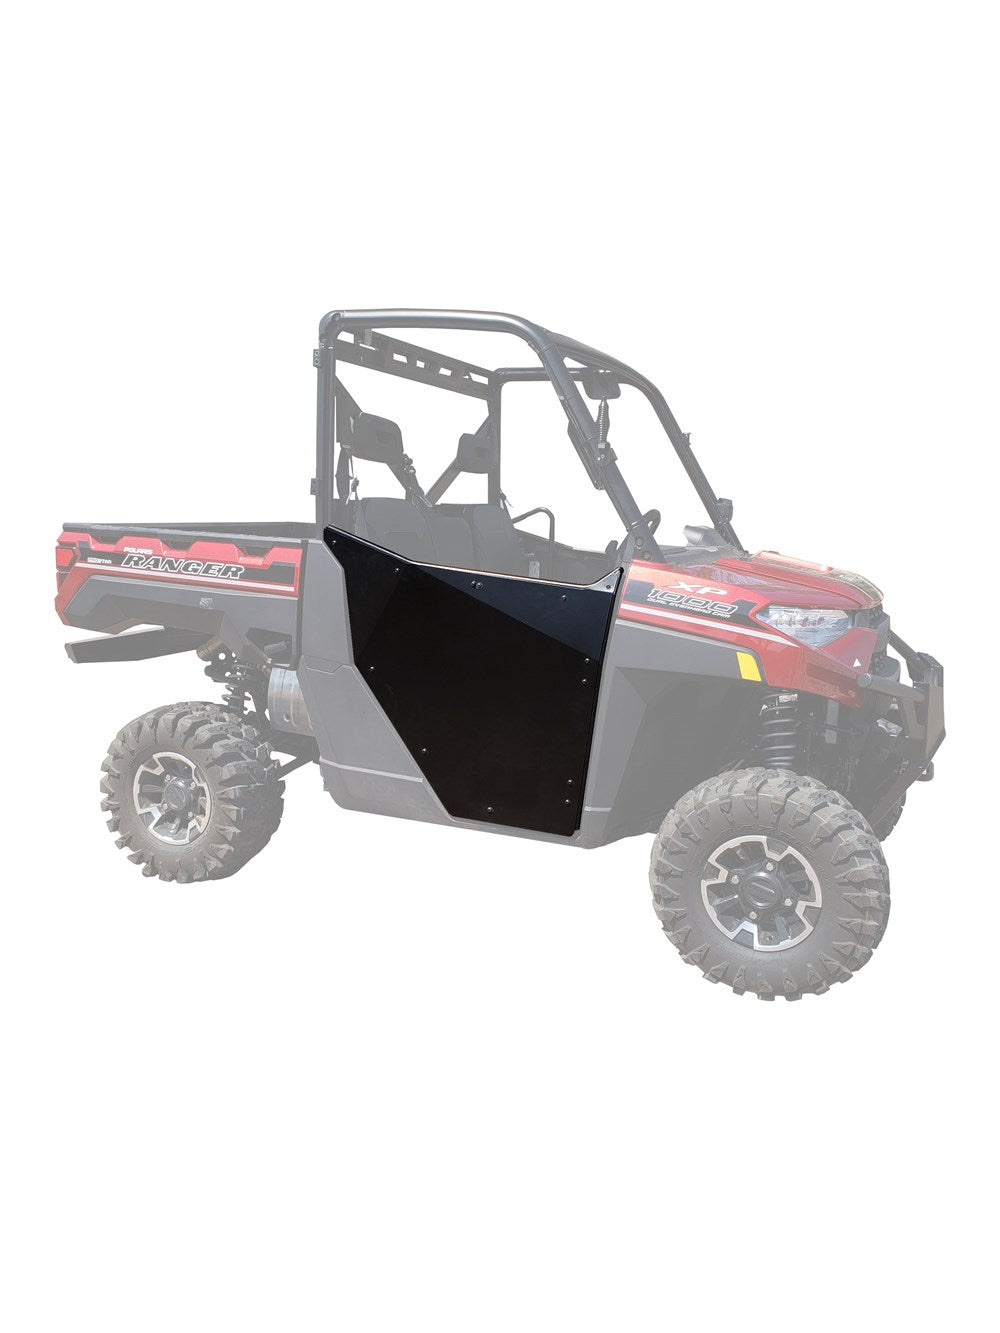 Polaris Ranger 2018+ 1000 XP 2 Door Kit by Dragongire Racing 07-1800